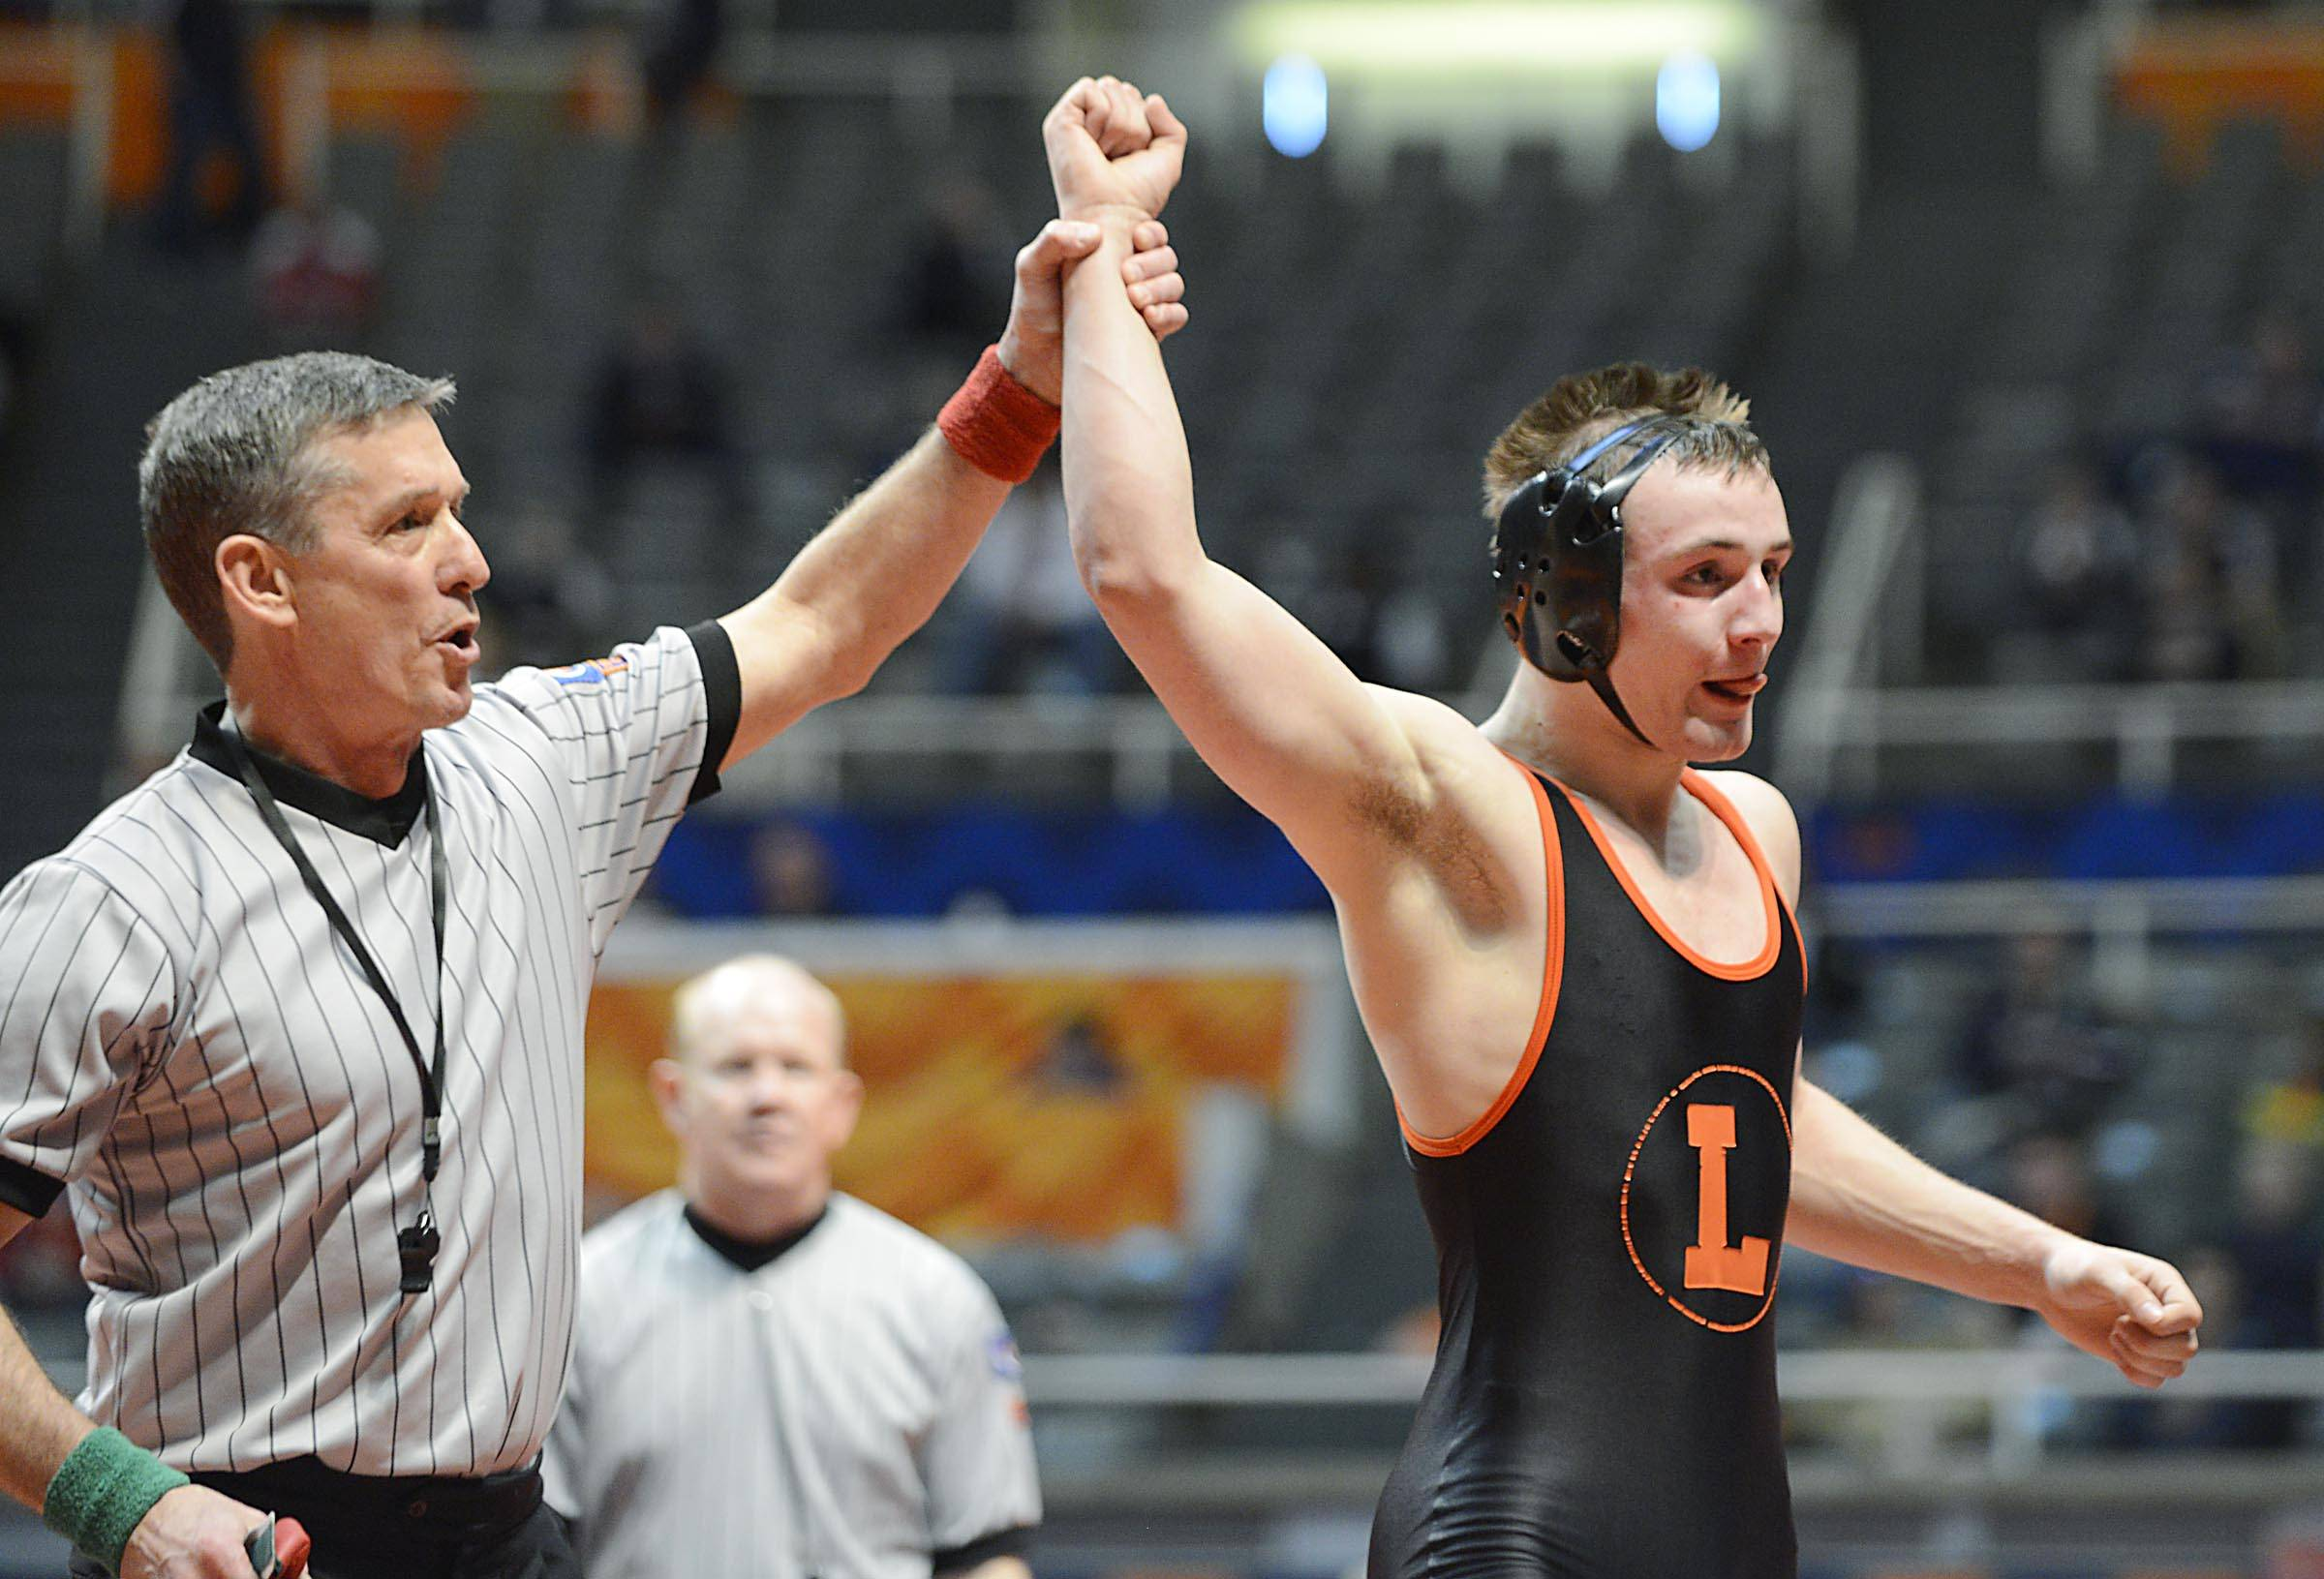 Libertyville's Joey Gunther is declared the winner against Keone Derain of St. Charles East Friday in quarterfinals of the 152-pound weight class of the 3A IHSA state tournament .